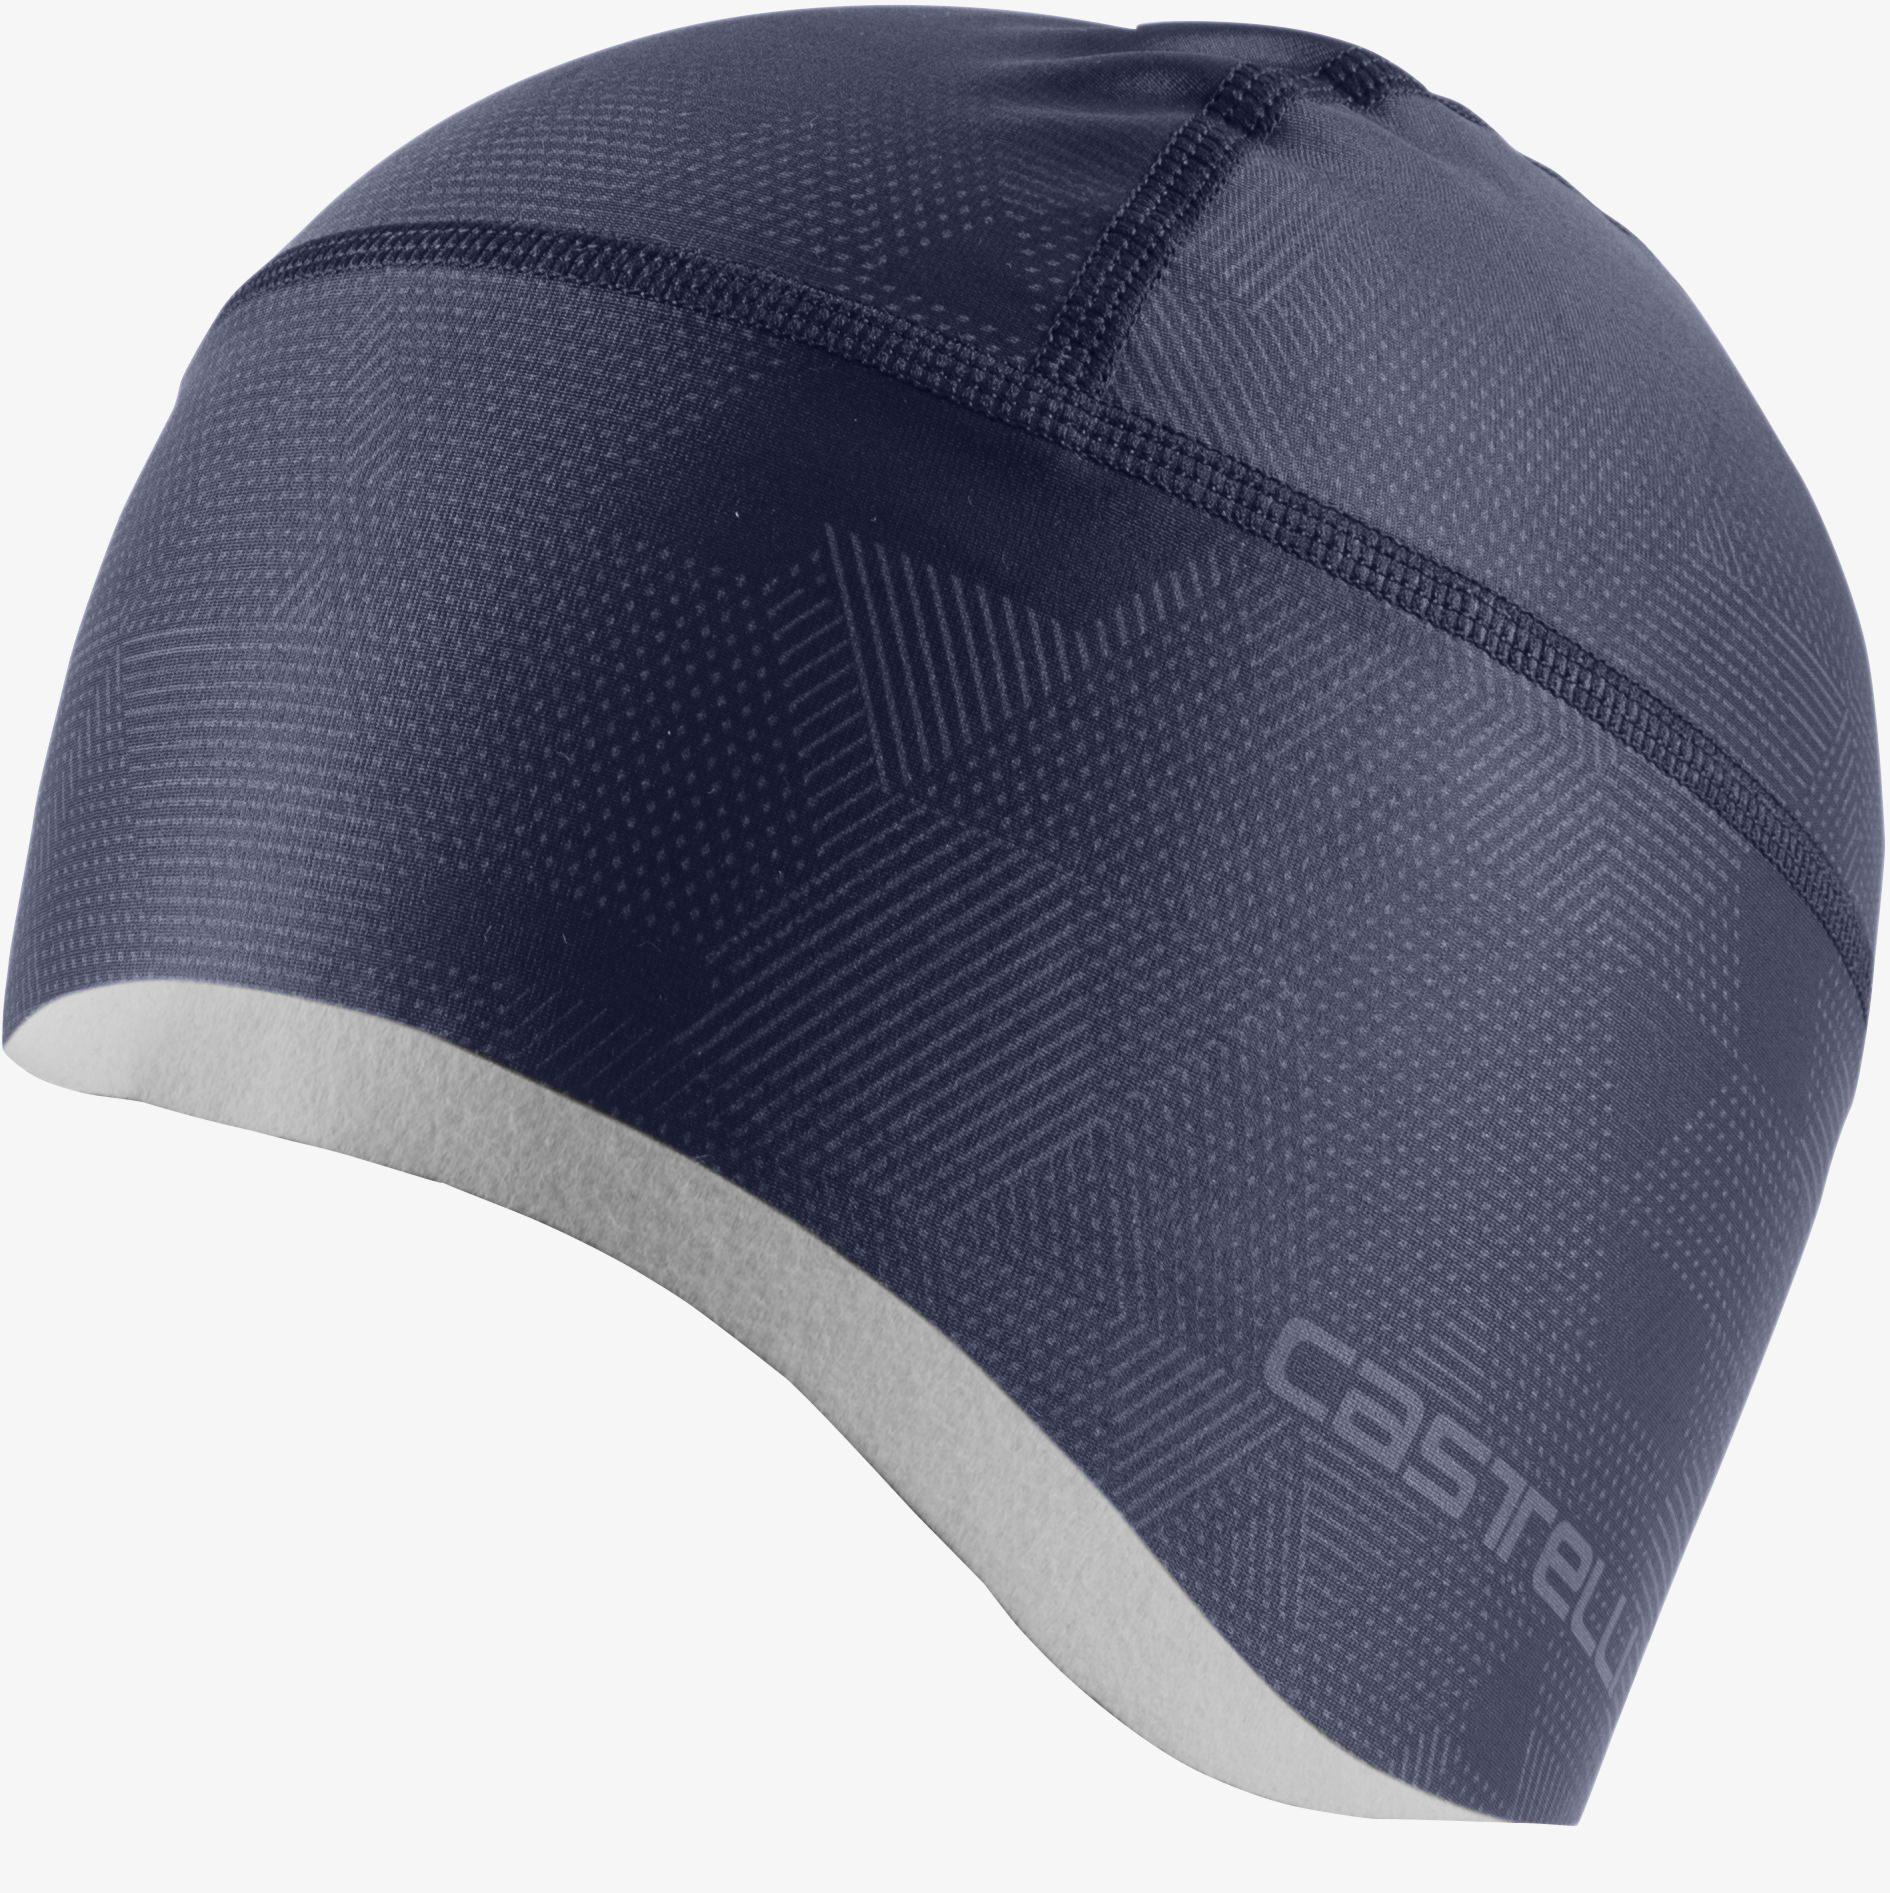 Castelli-Castelli Pro Thermal Skully-Savile Blue-UNI-CS205424148-saddleback-elite-performance-cycling